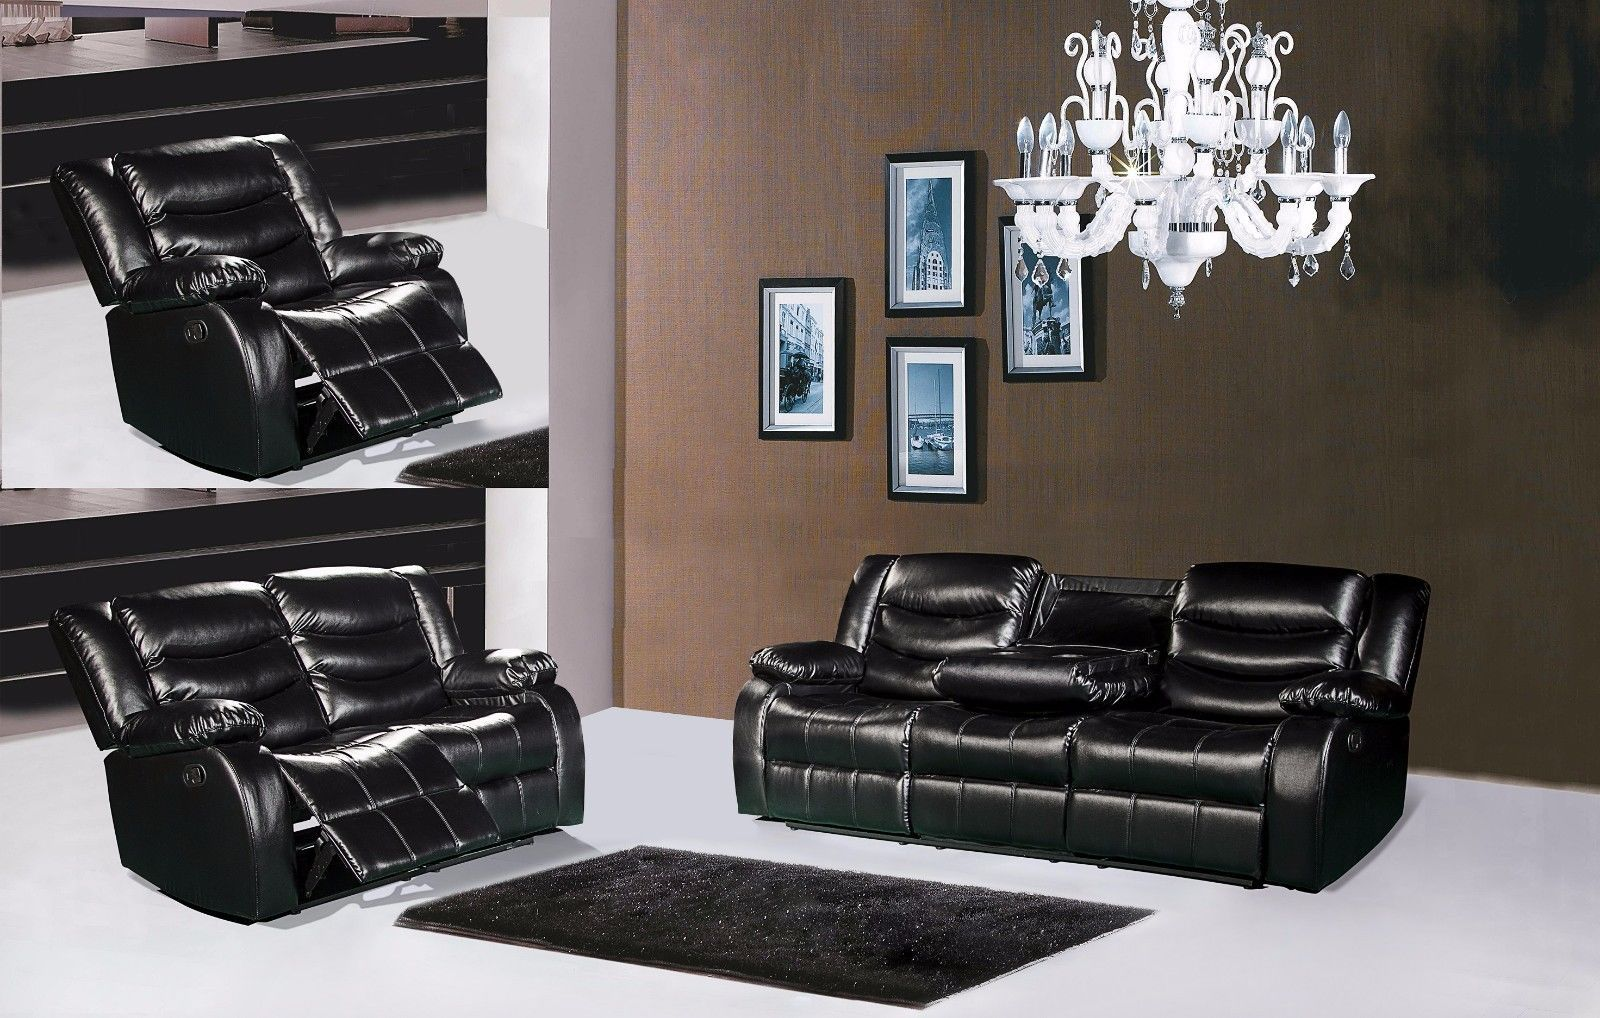 Meridian 644 Bonded Leather Living Room Sofa Set 2pc. Black Contemporary Style